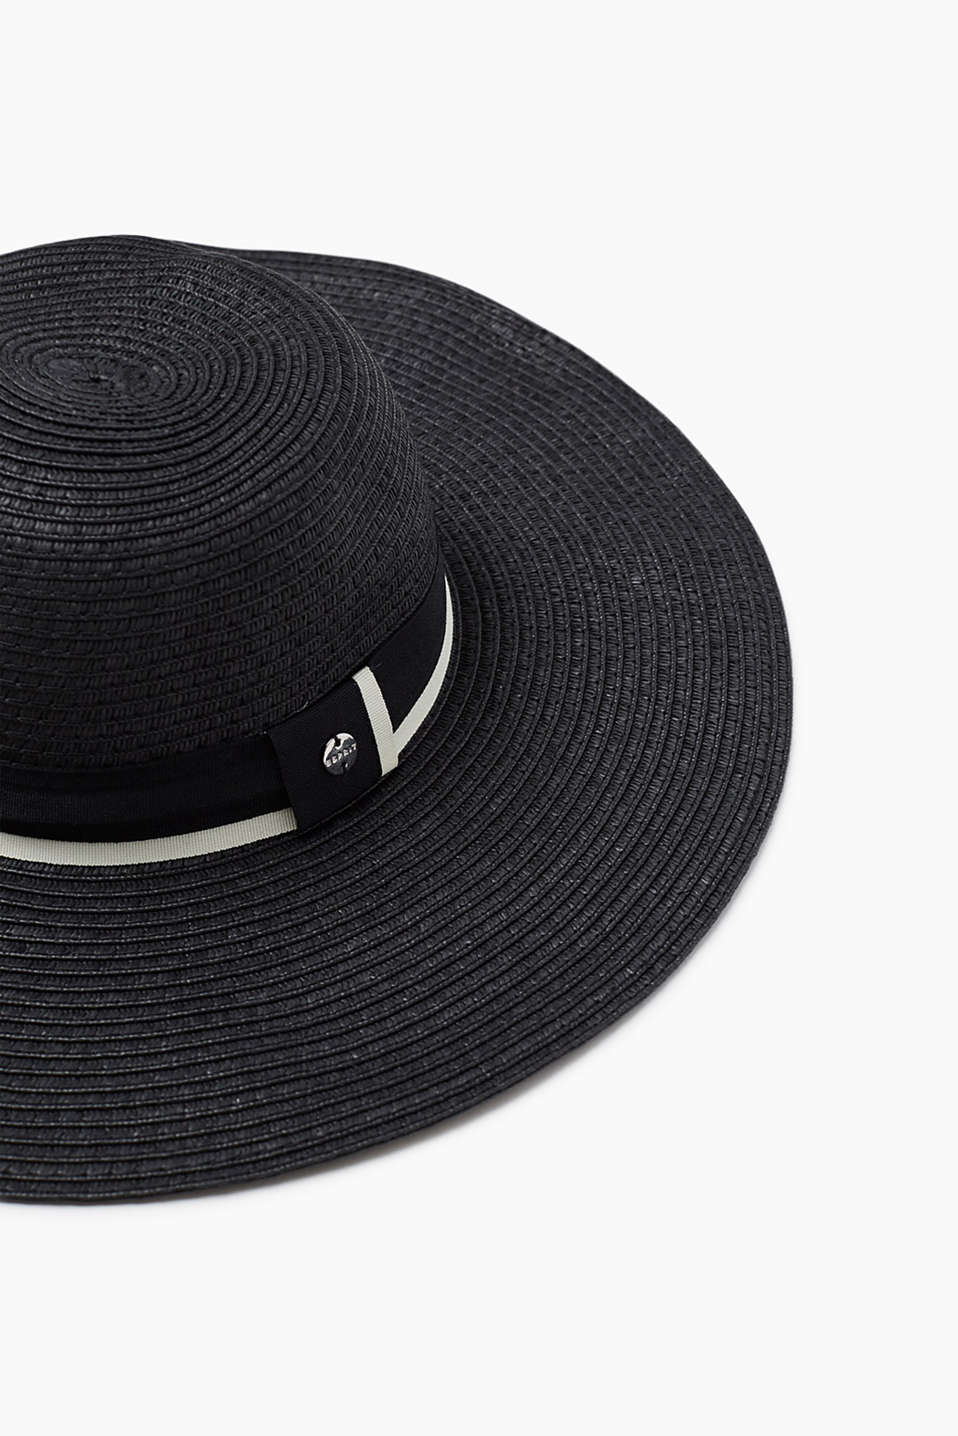 Straw hat in a tone-in-tone look with a striped crêpe hat band